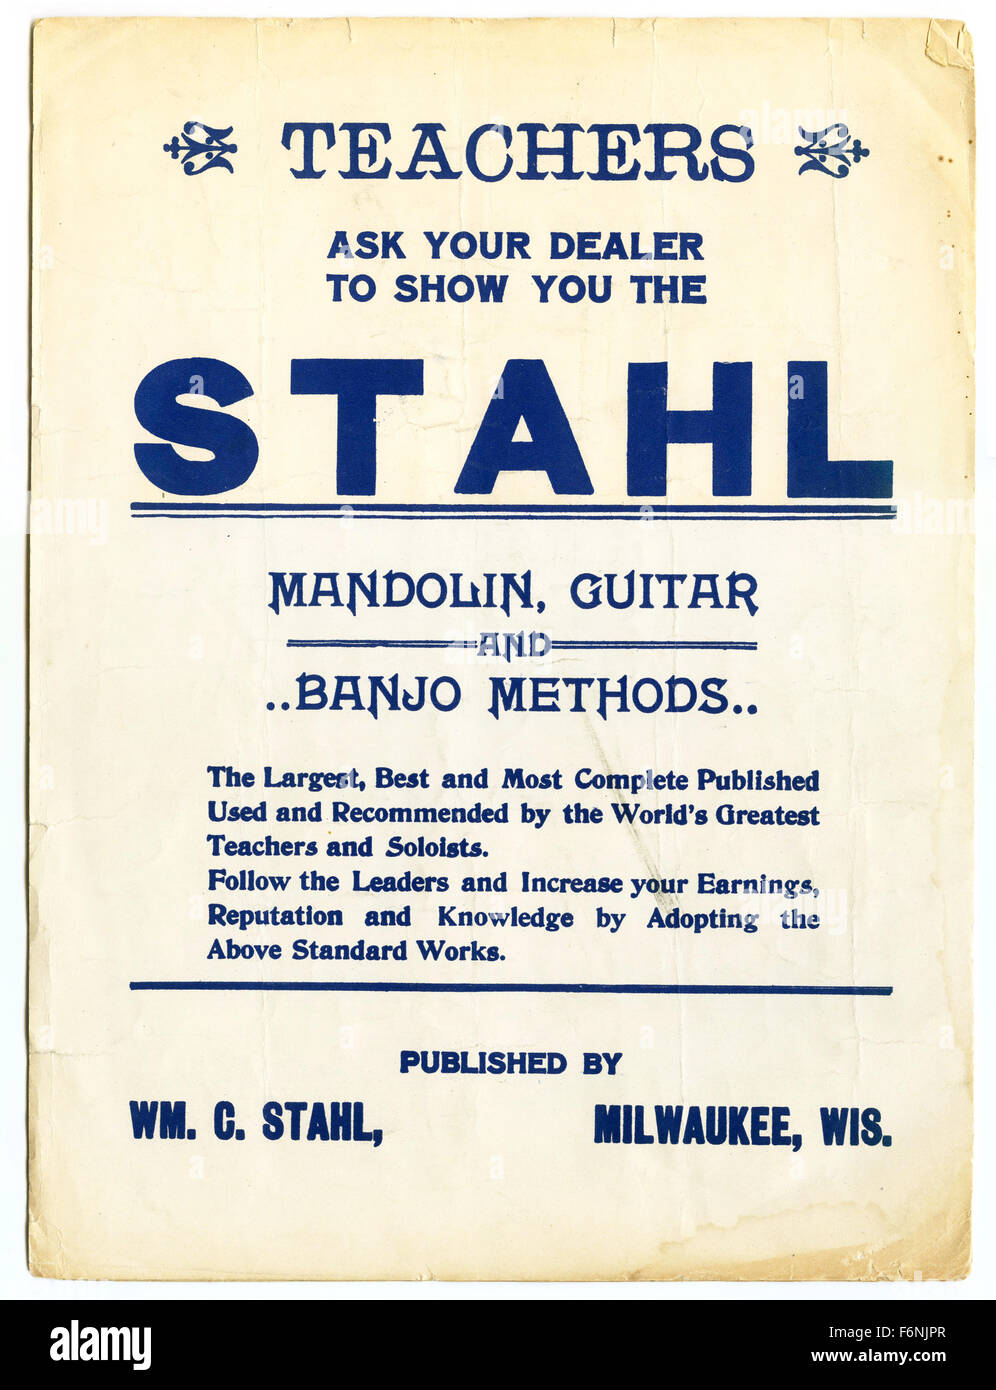 William C. Stahl Music Publishers advertisement for mandolin, guitar and banjo methods, 1920 - Stock Image